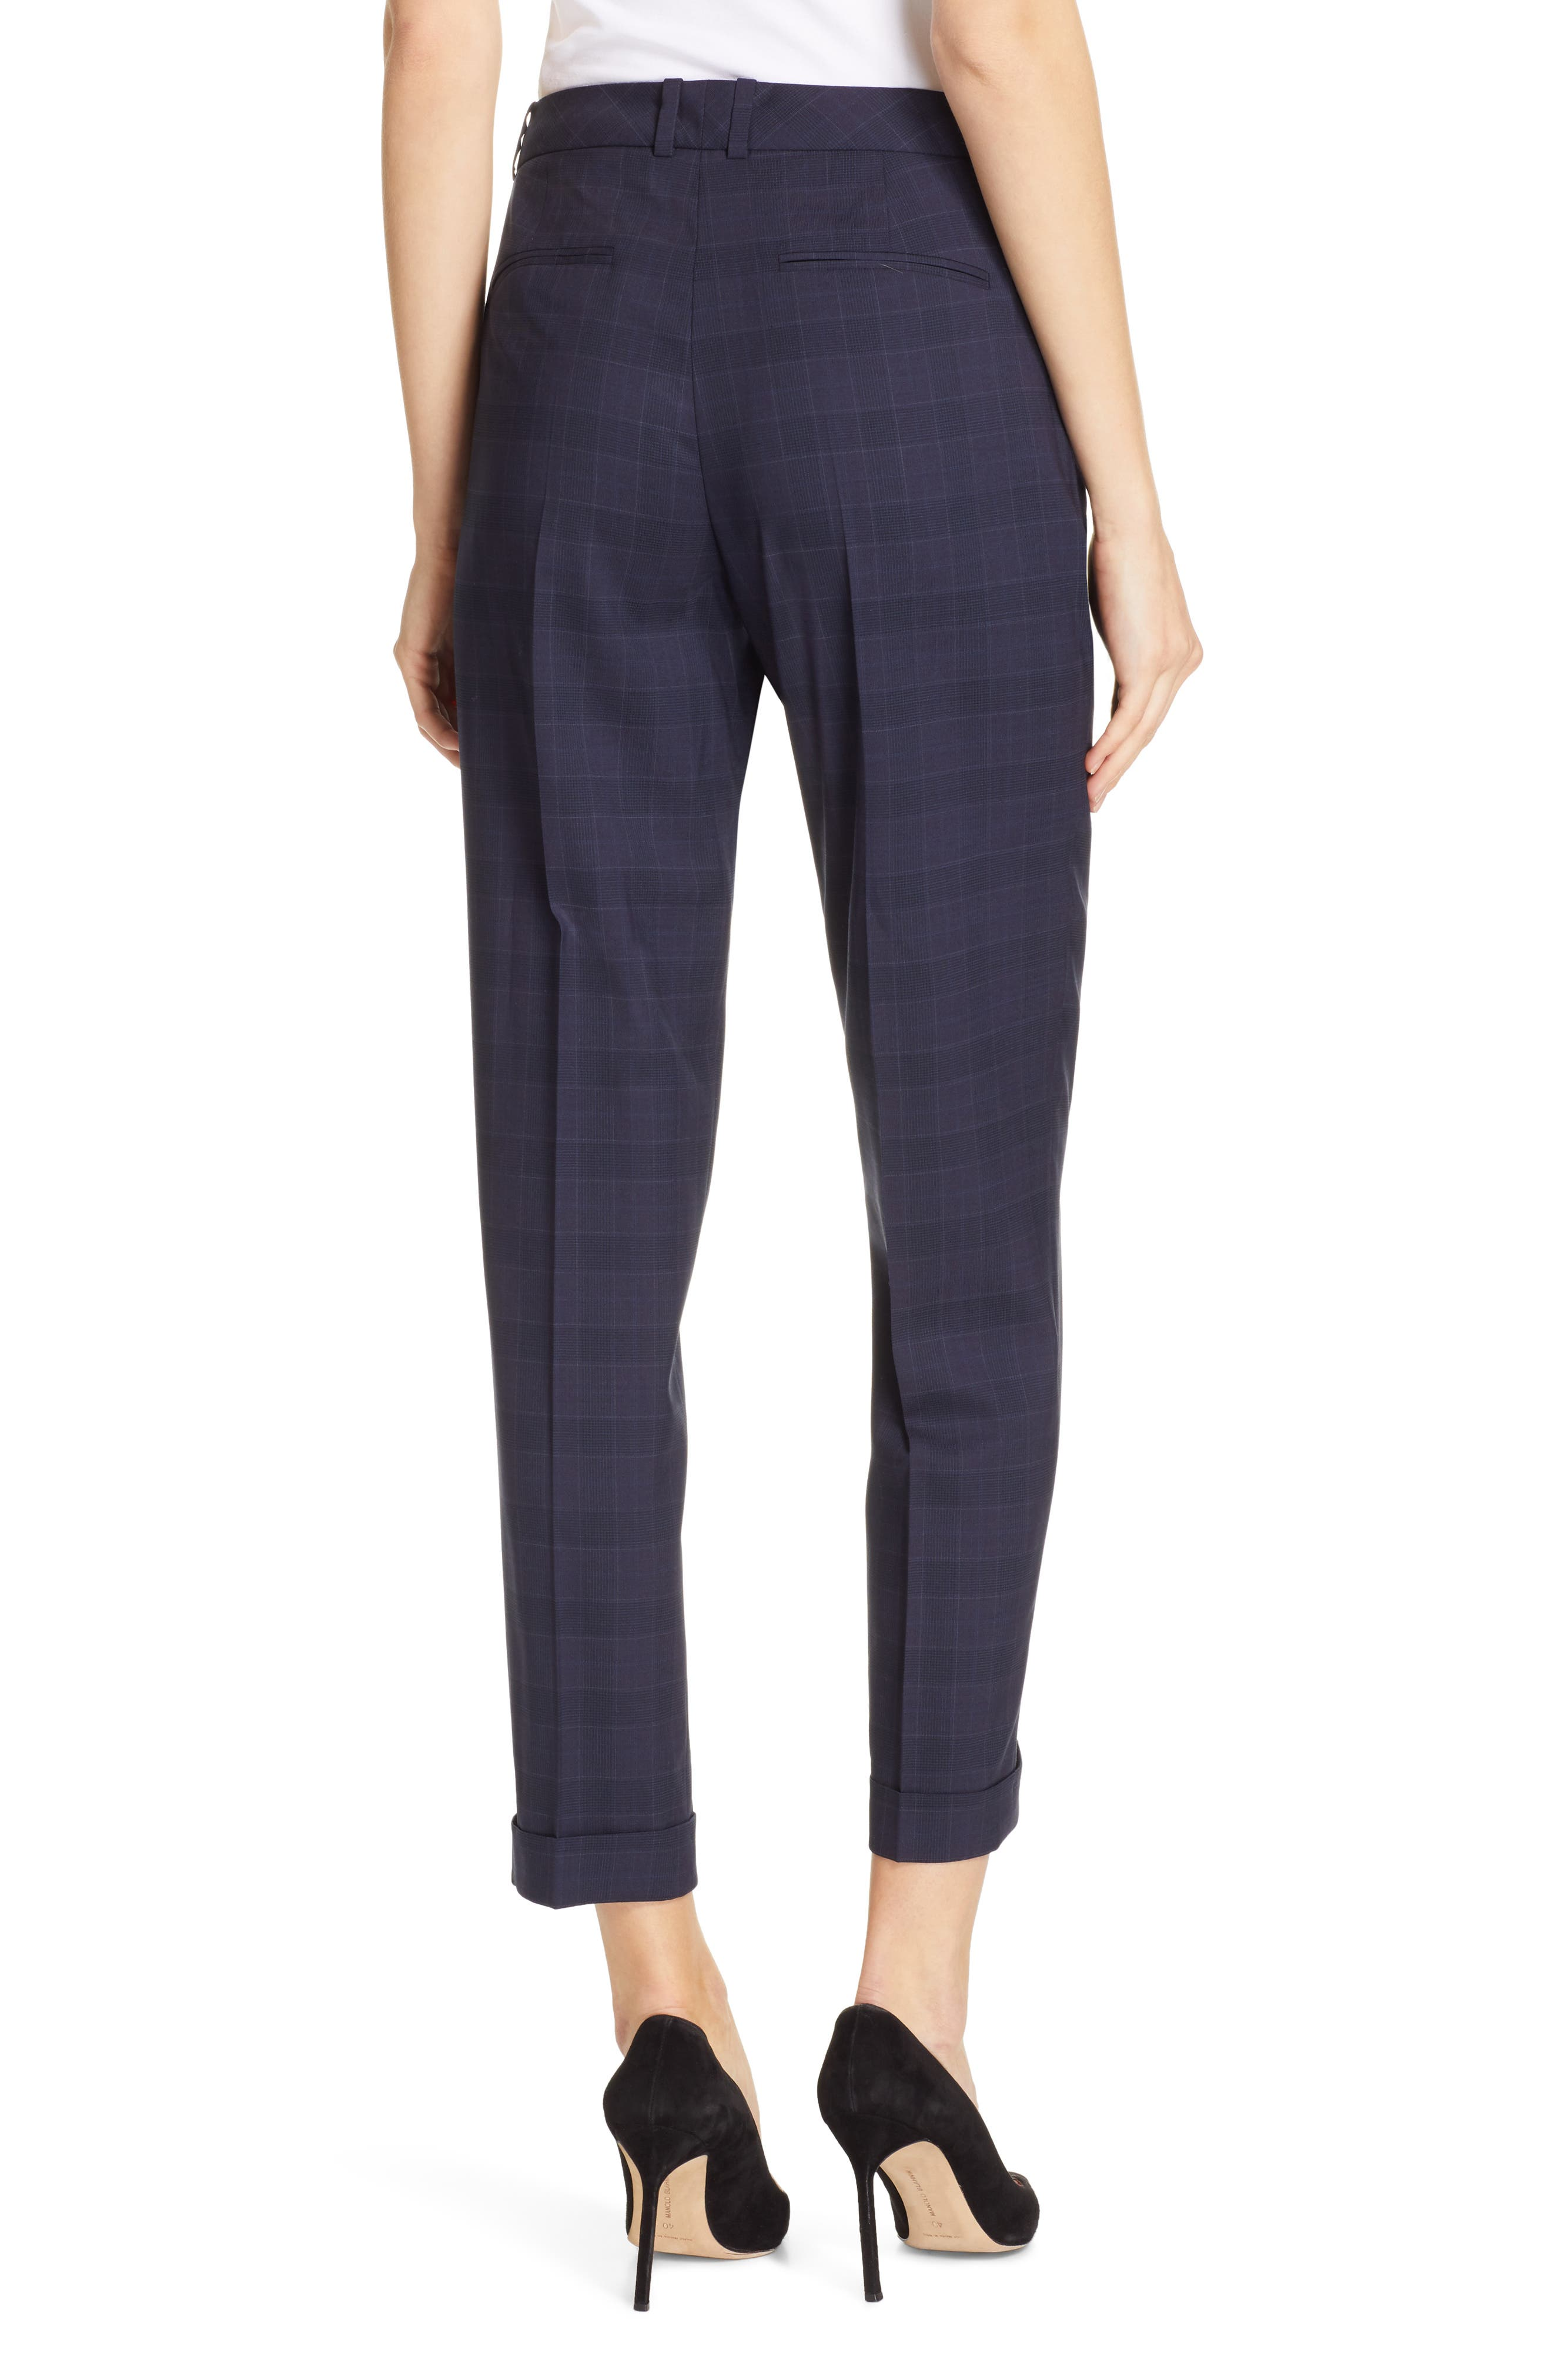 Tocanes Modern Check Wool Ankle Trousers,                             Alternate thumbnail 2, color,                             DARK NAVY FANTASY